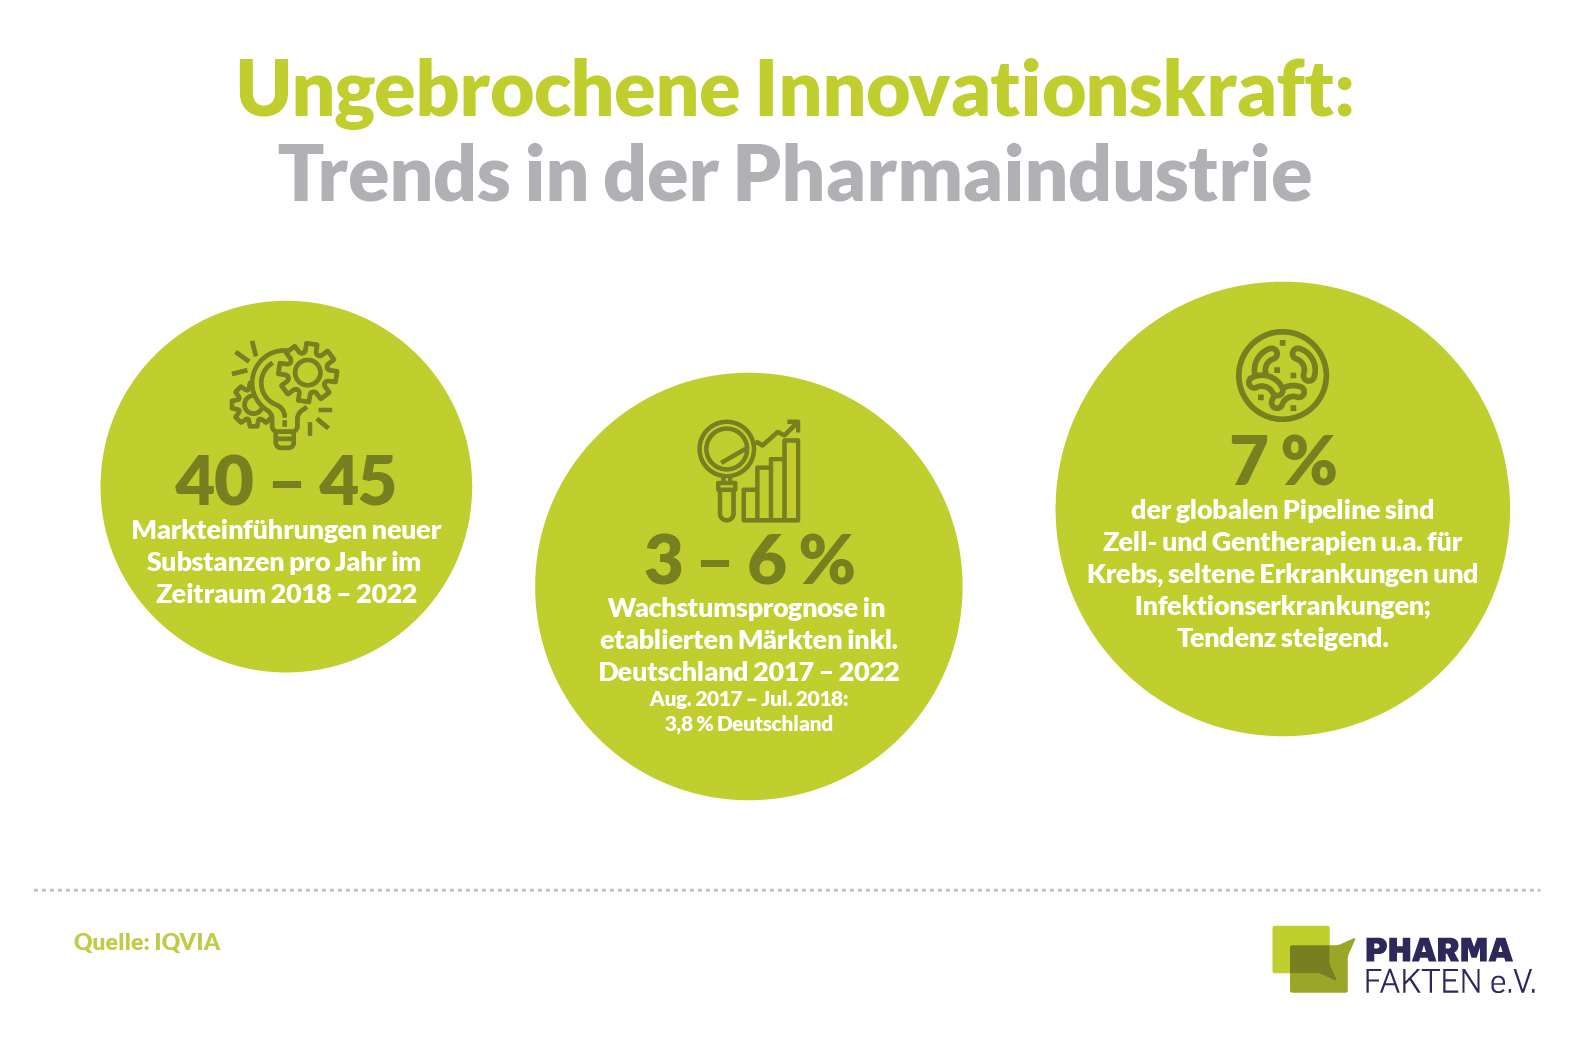 Ungebrochene Innovationskraft: Trends in der Pharmaindustrie